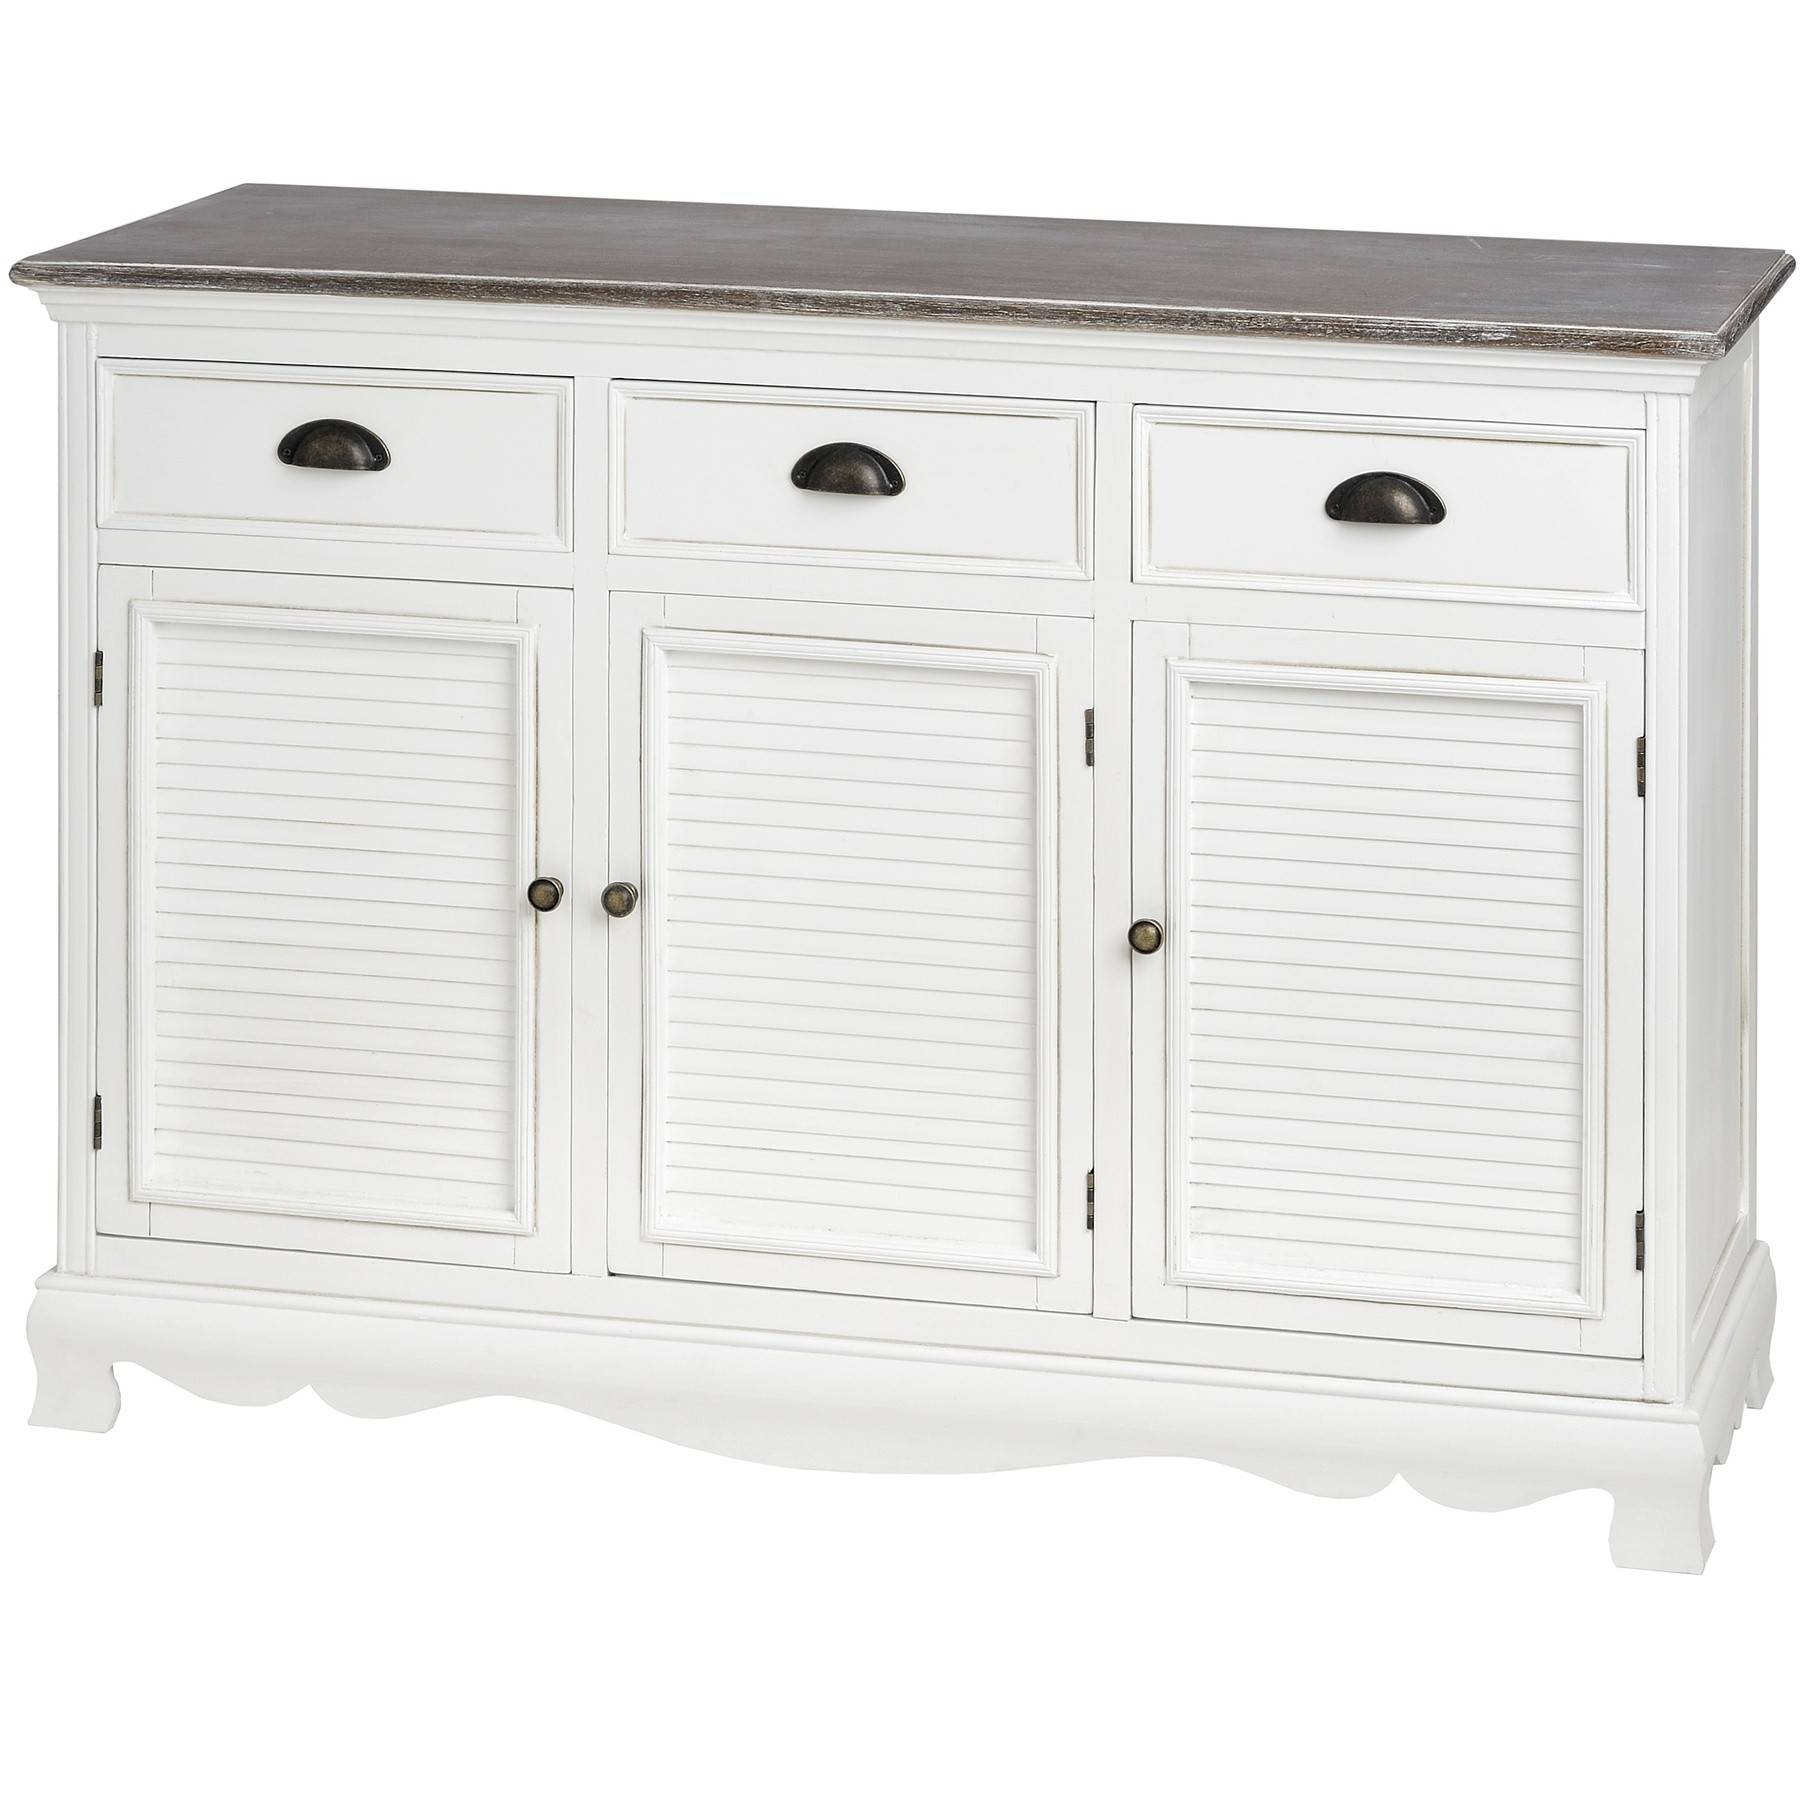 Louisiana Large White Sideboard With 3 Doors| Bedroom Furniture Direct pertaining to Fully Assembled Sideboards (Image 22 of 30)